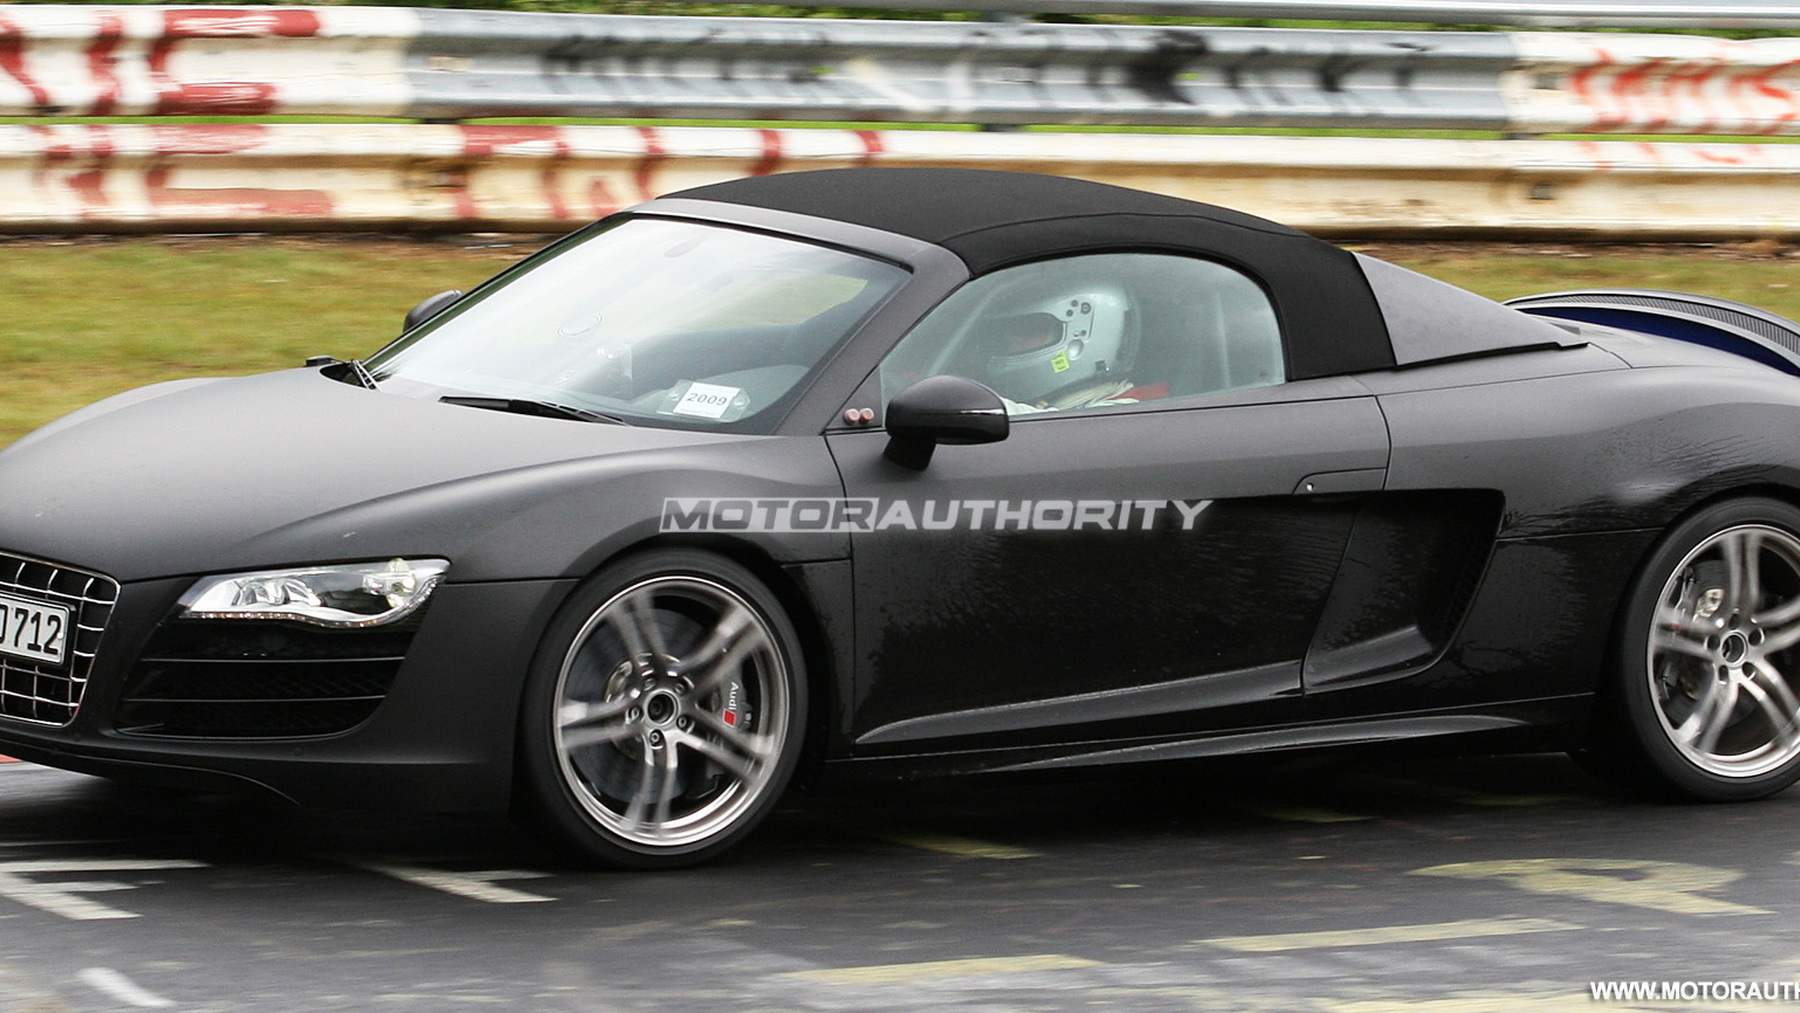 2011 audi r8 spyder spy shots june 008